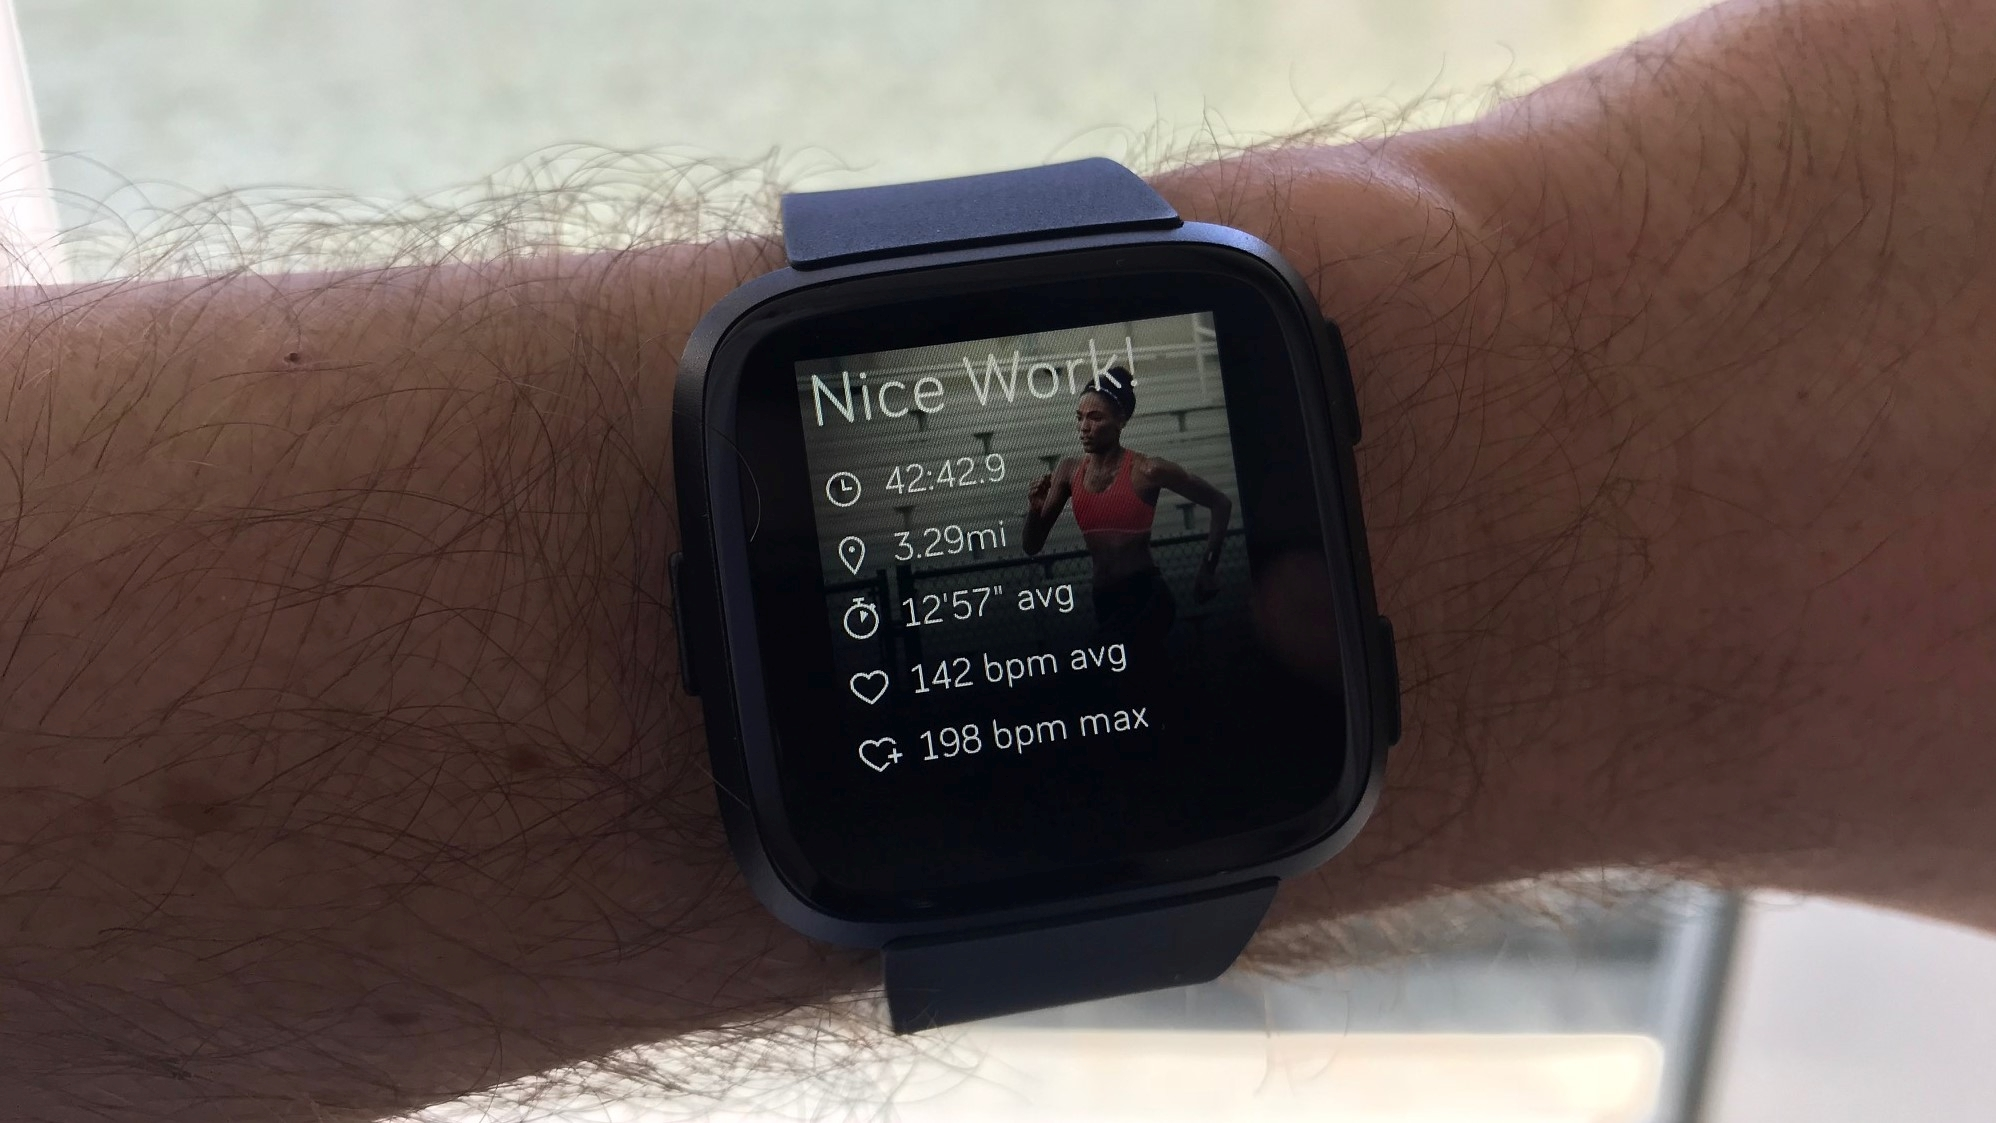 The Versa gives you a workout summary of your performance as soon as you've done your exercise